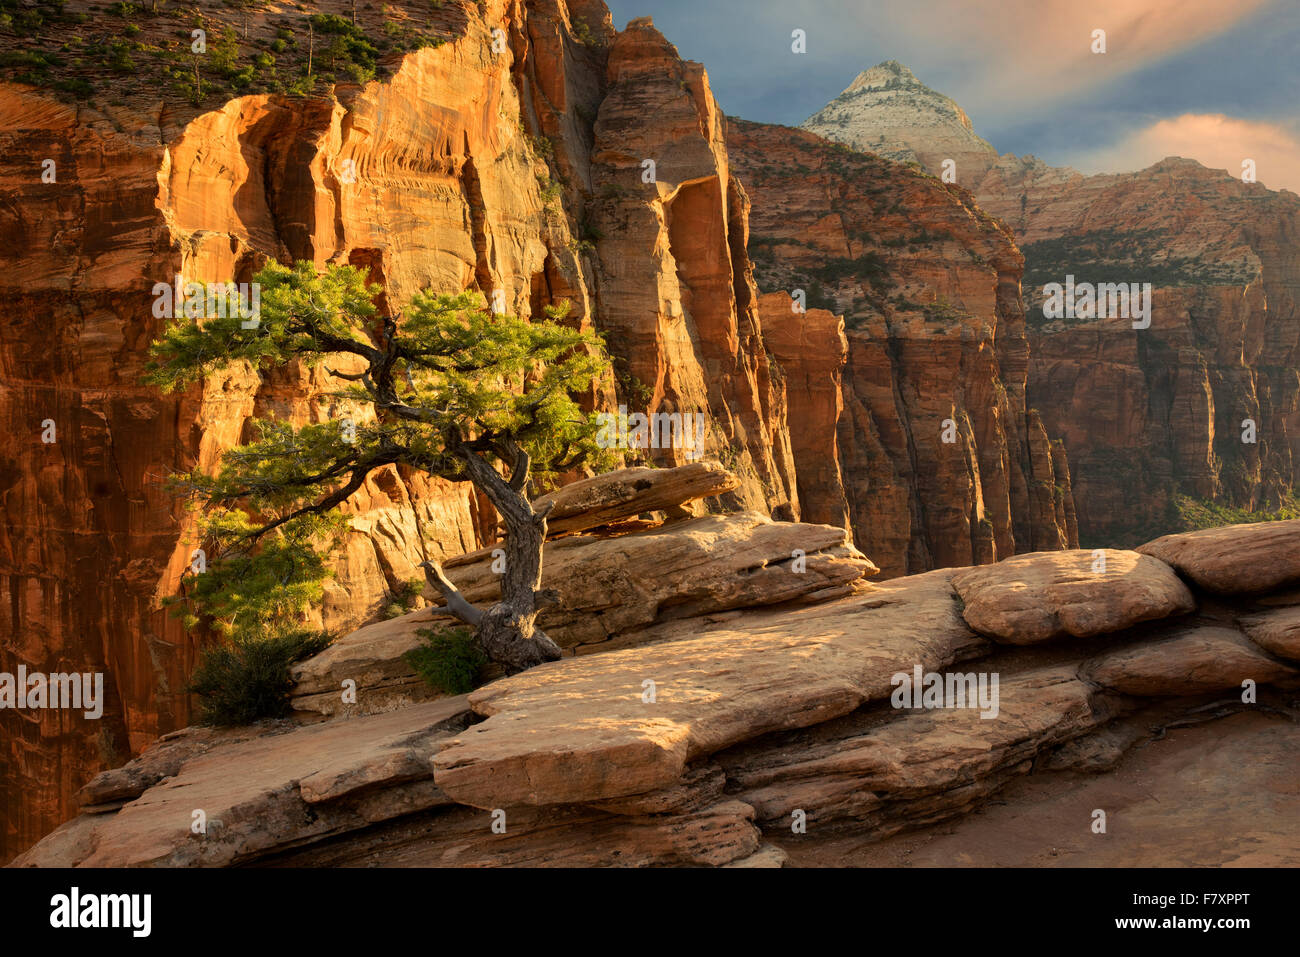 Pine tree at sunset. Canyon Overlook. Zion National Park, Utah - Stock Image